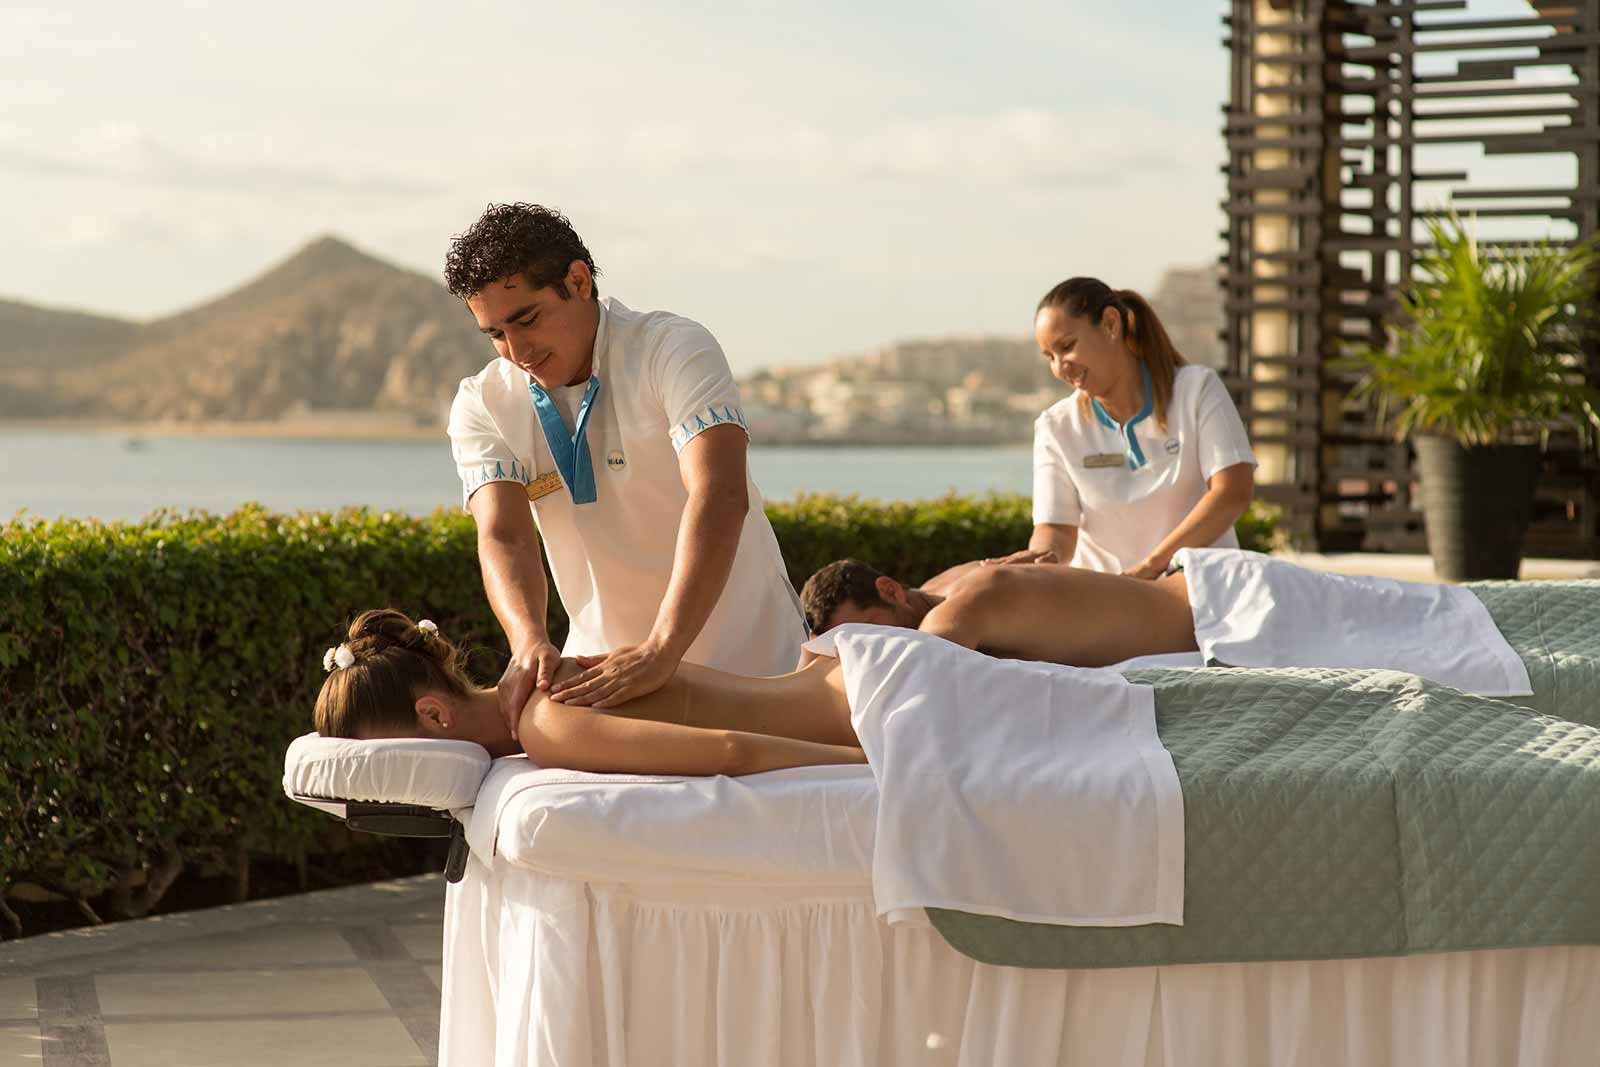 Massage Team Casa Dorada